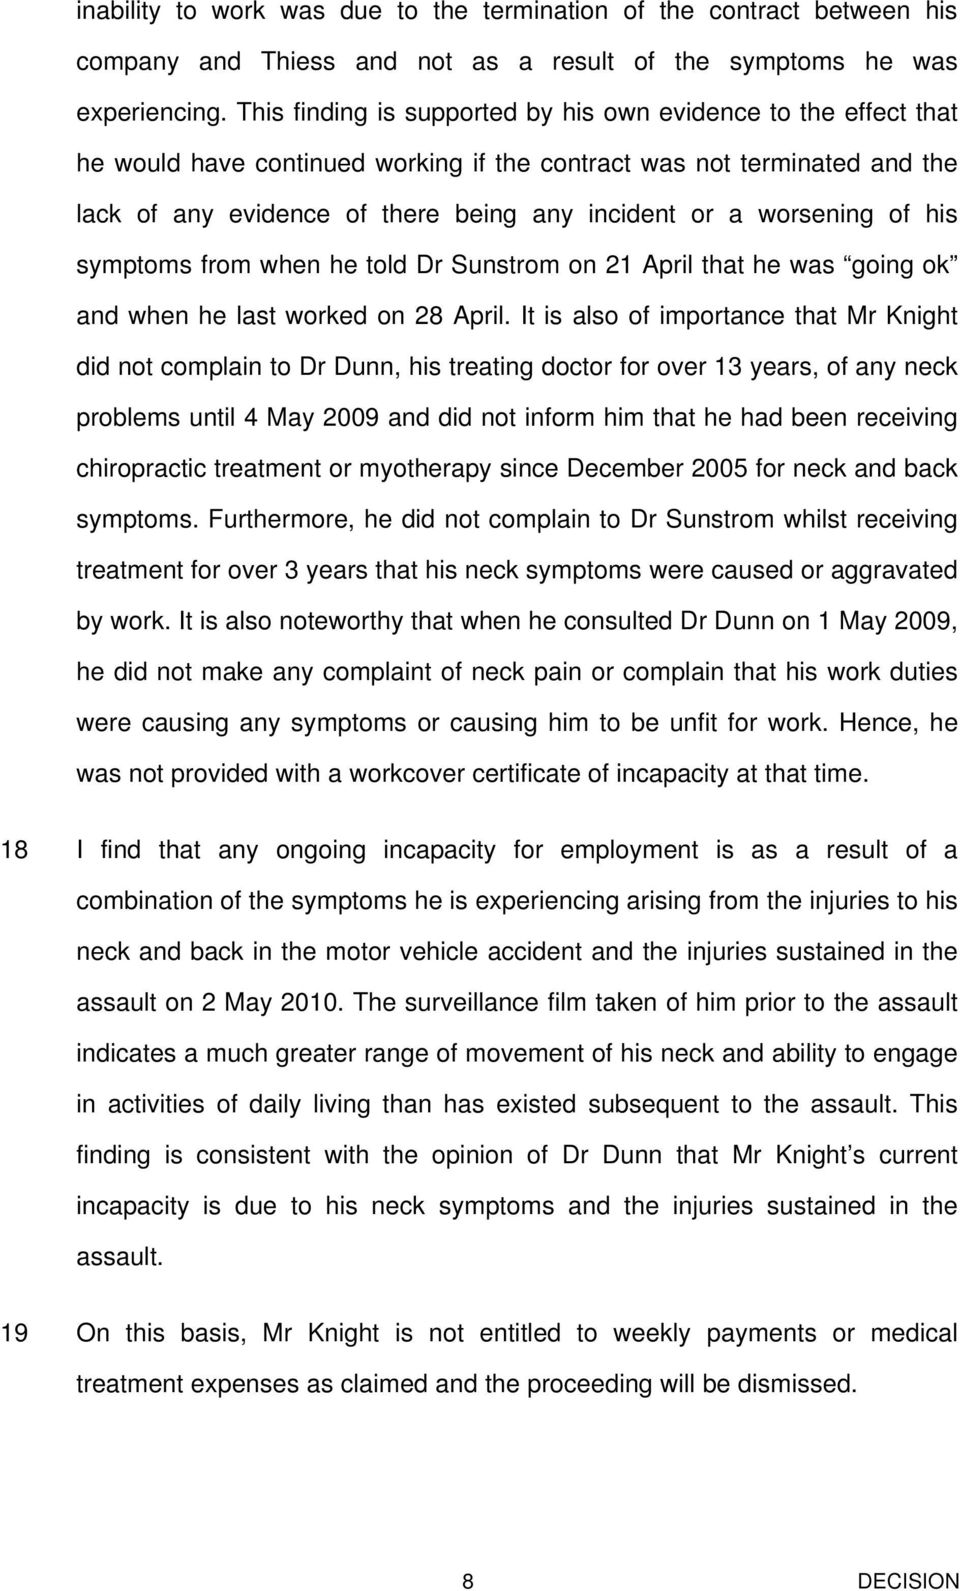 worsening of his symptoms from when he told Dr Sunstrom on 21 April that he was going ok and when he last worked on 28 April.